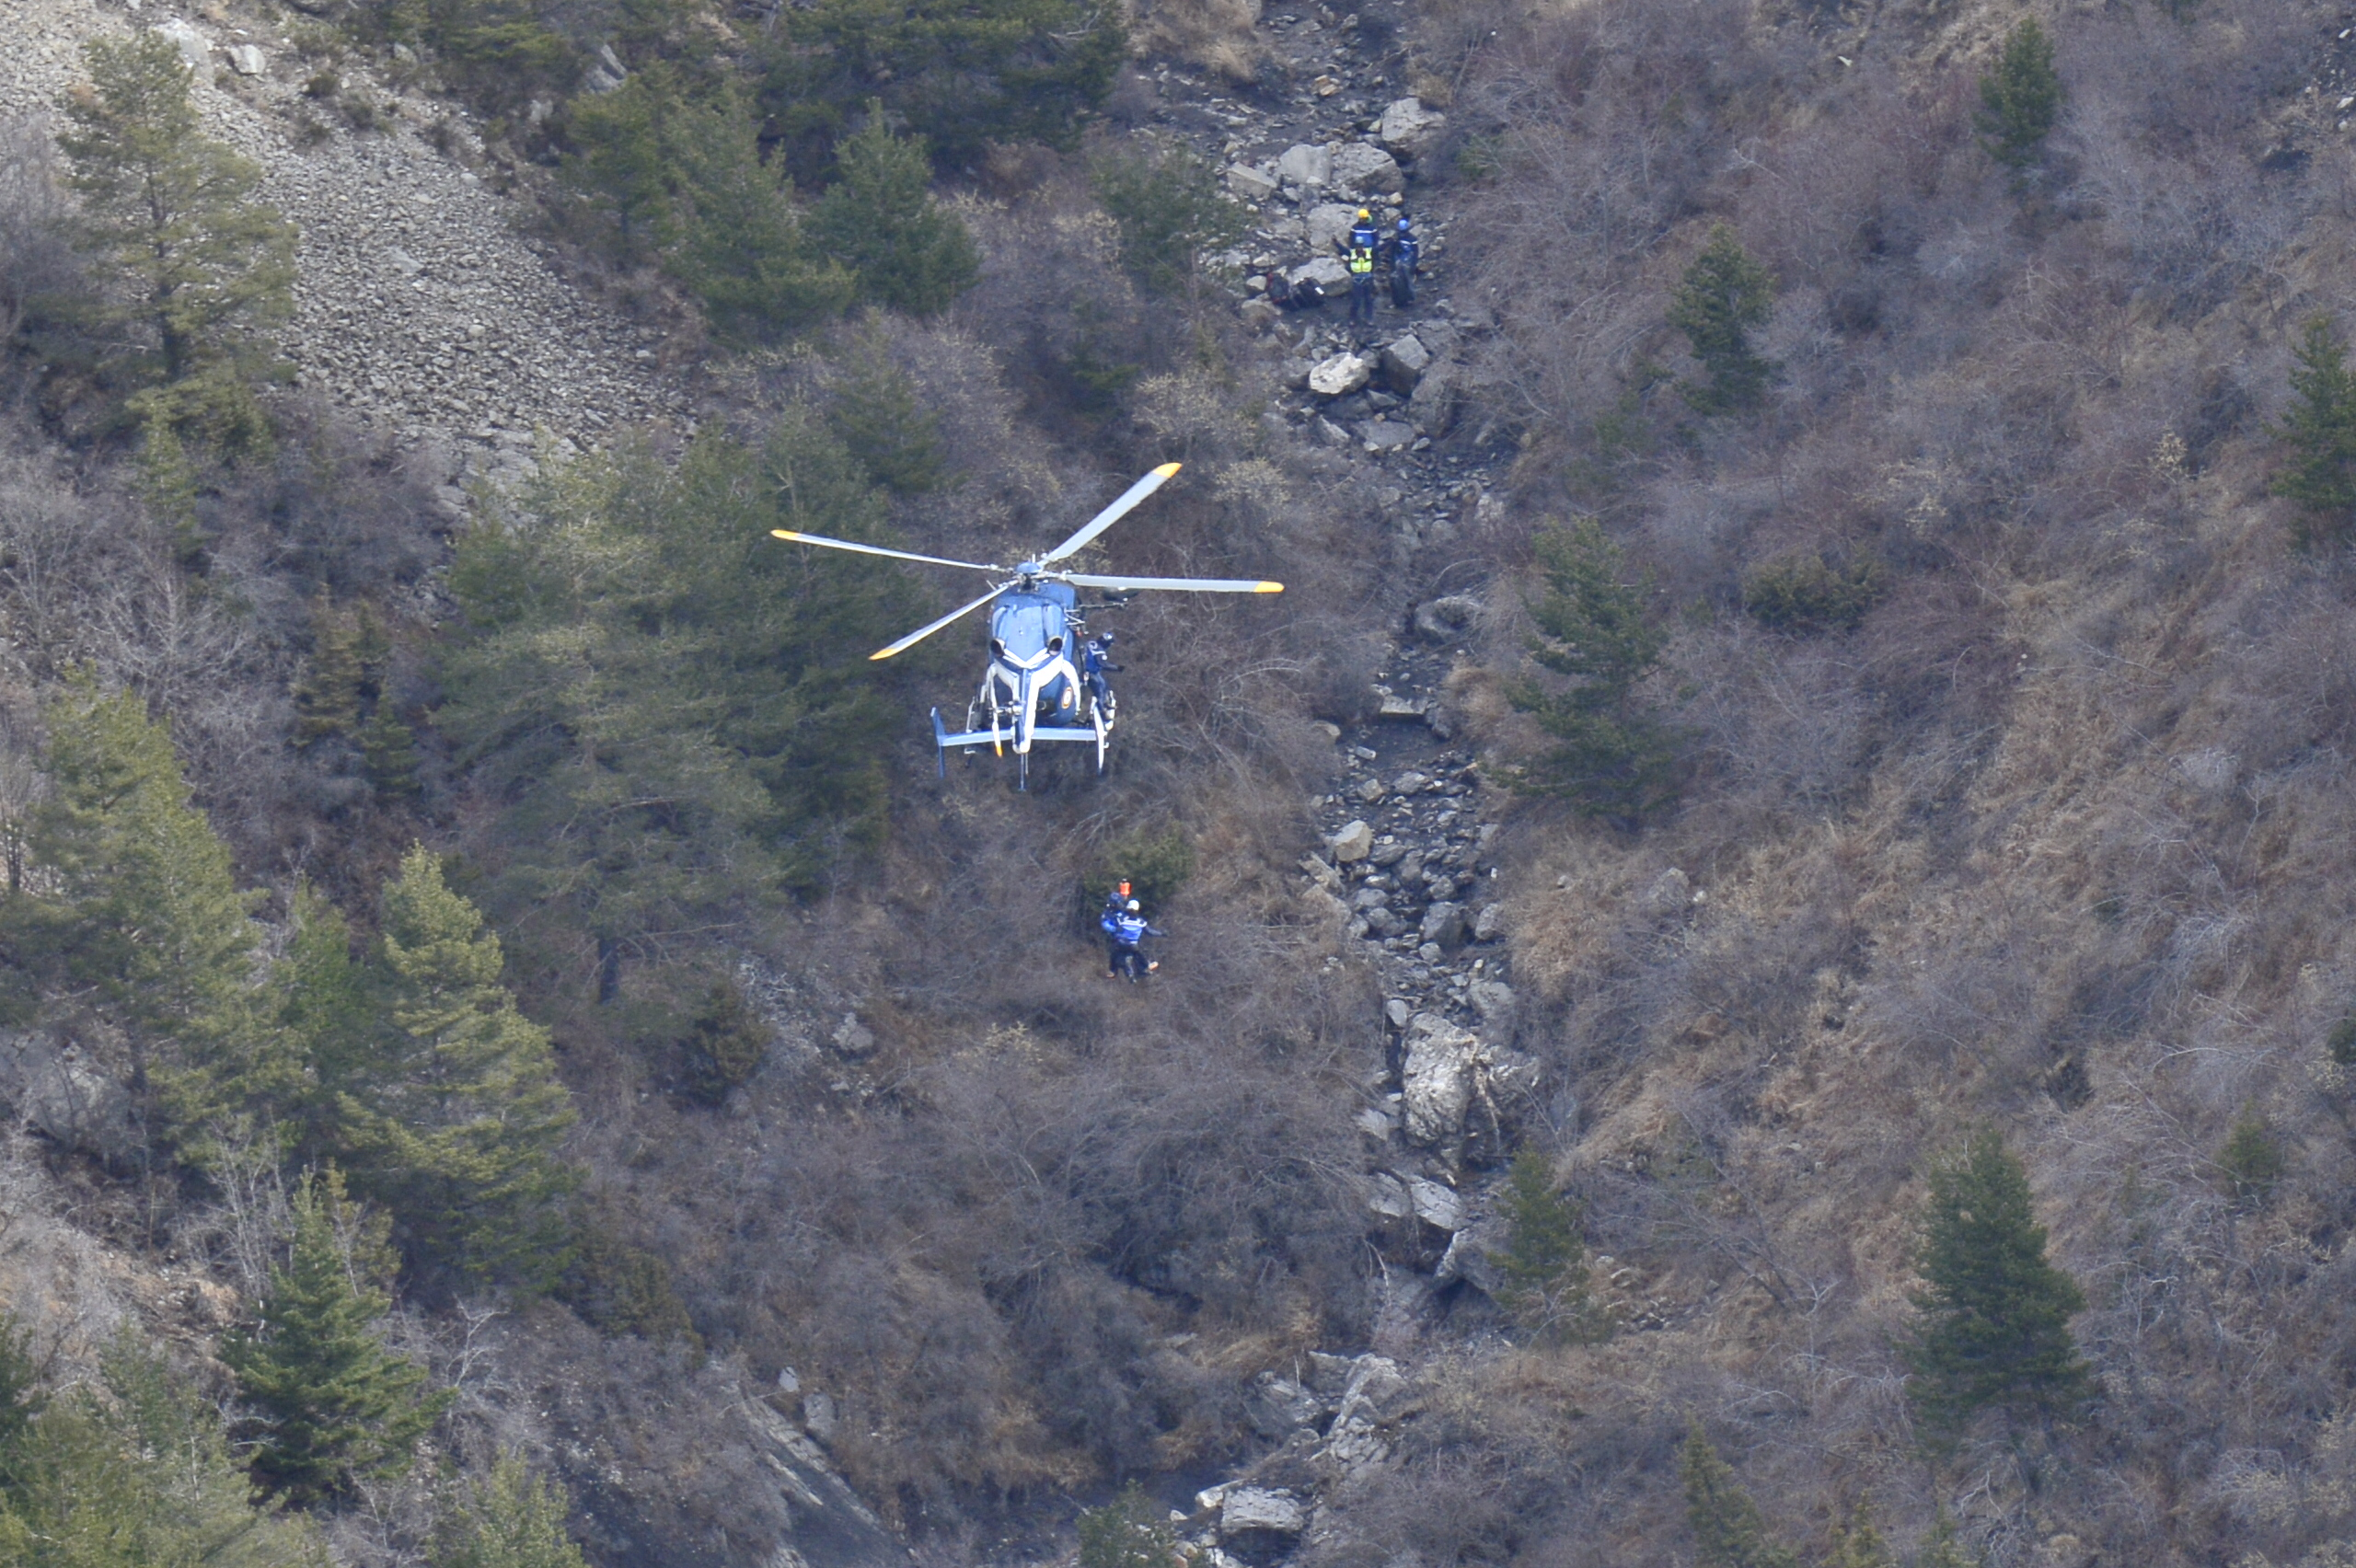 Mystery Surrounds The Germanwings Airbus That Crashed In Southern France Killing All On Board